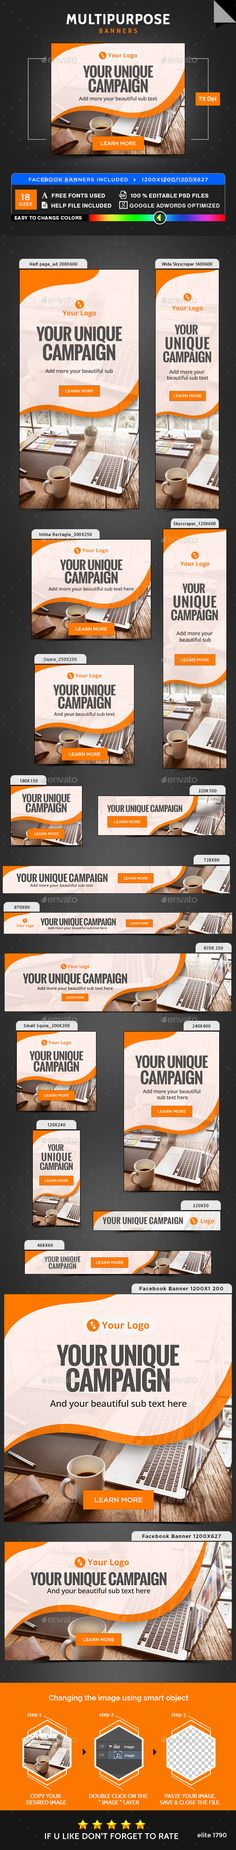 Multipurpose Banners Design Template - Banners & Ads Web Element Template PSD. Download here: https://graphicriver.net/item/multipurpose-banners/17740963?s_rank=14&ref=yinkira